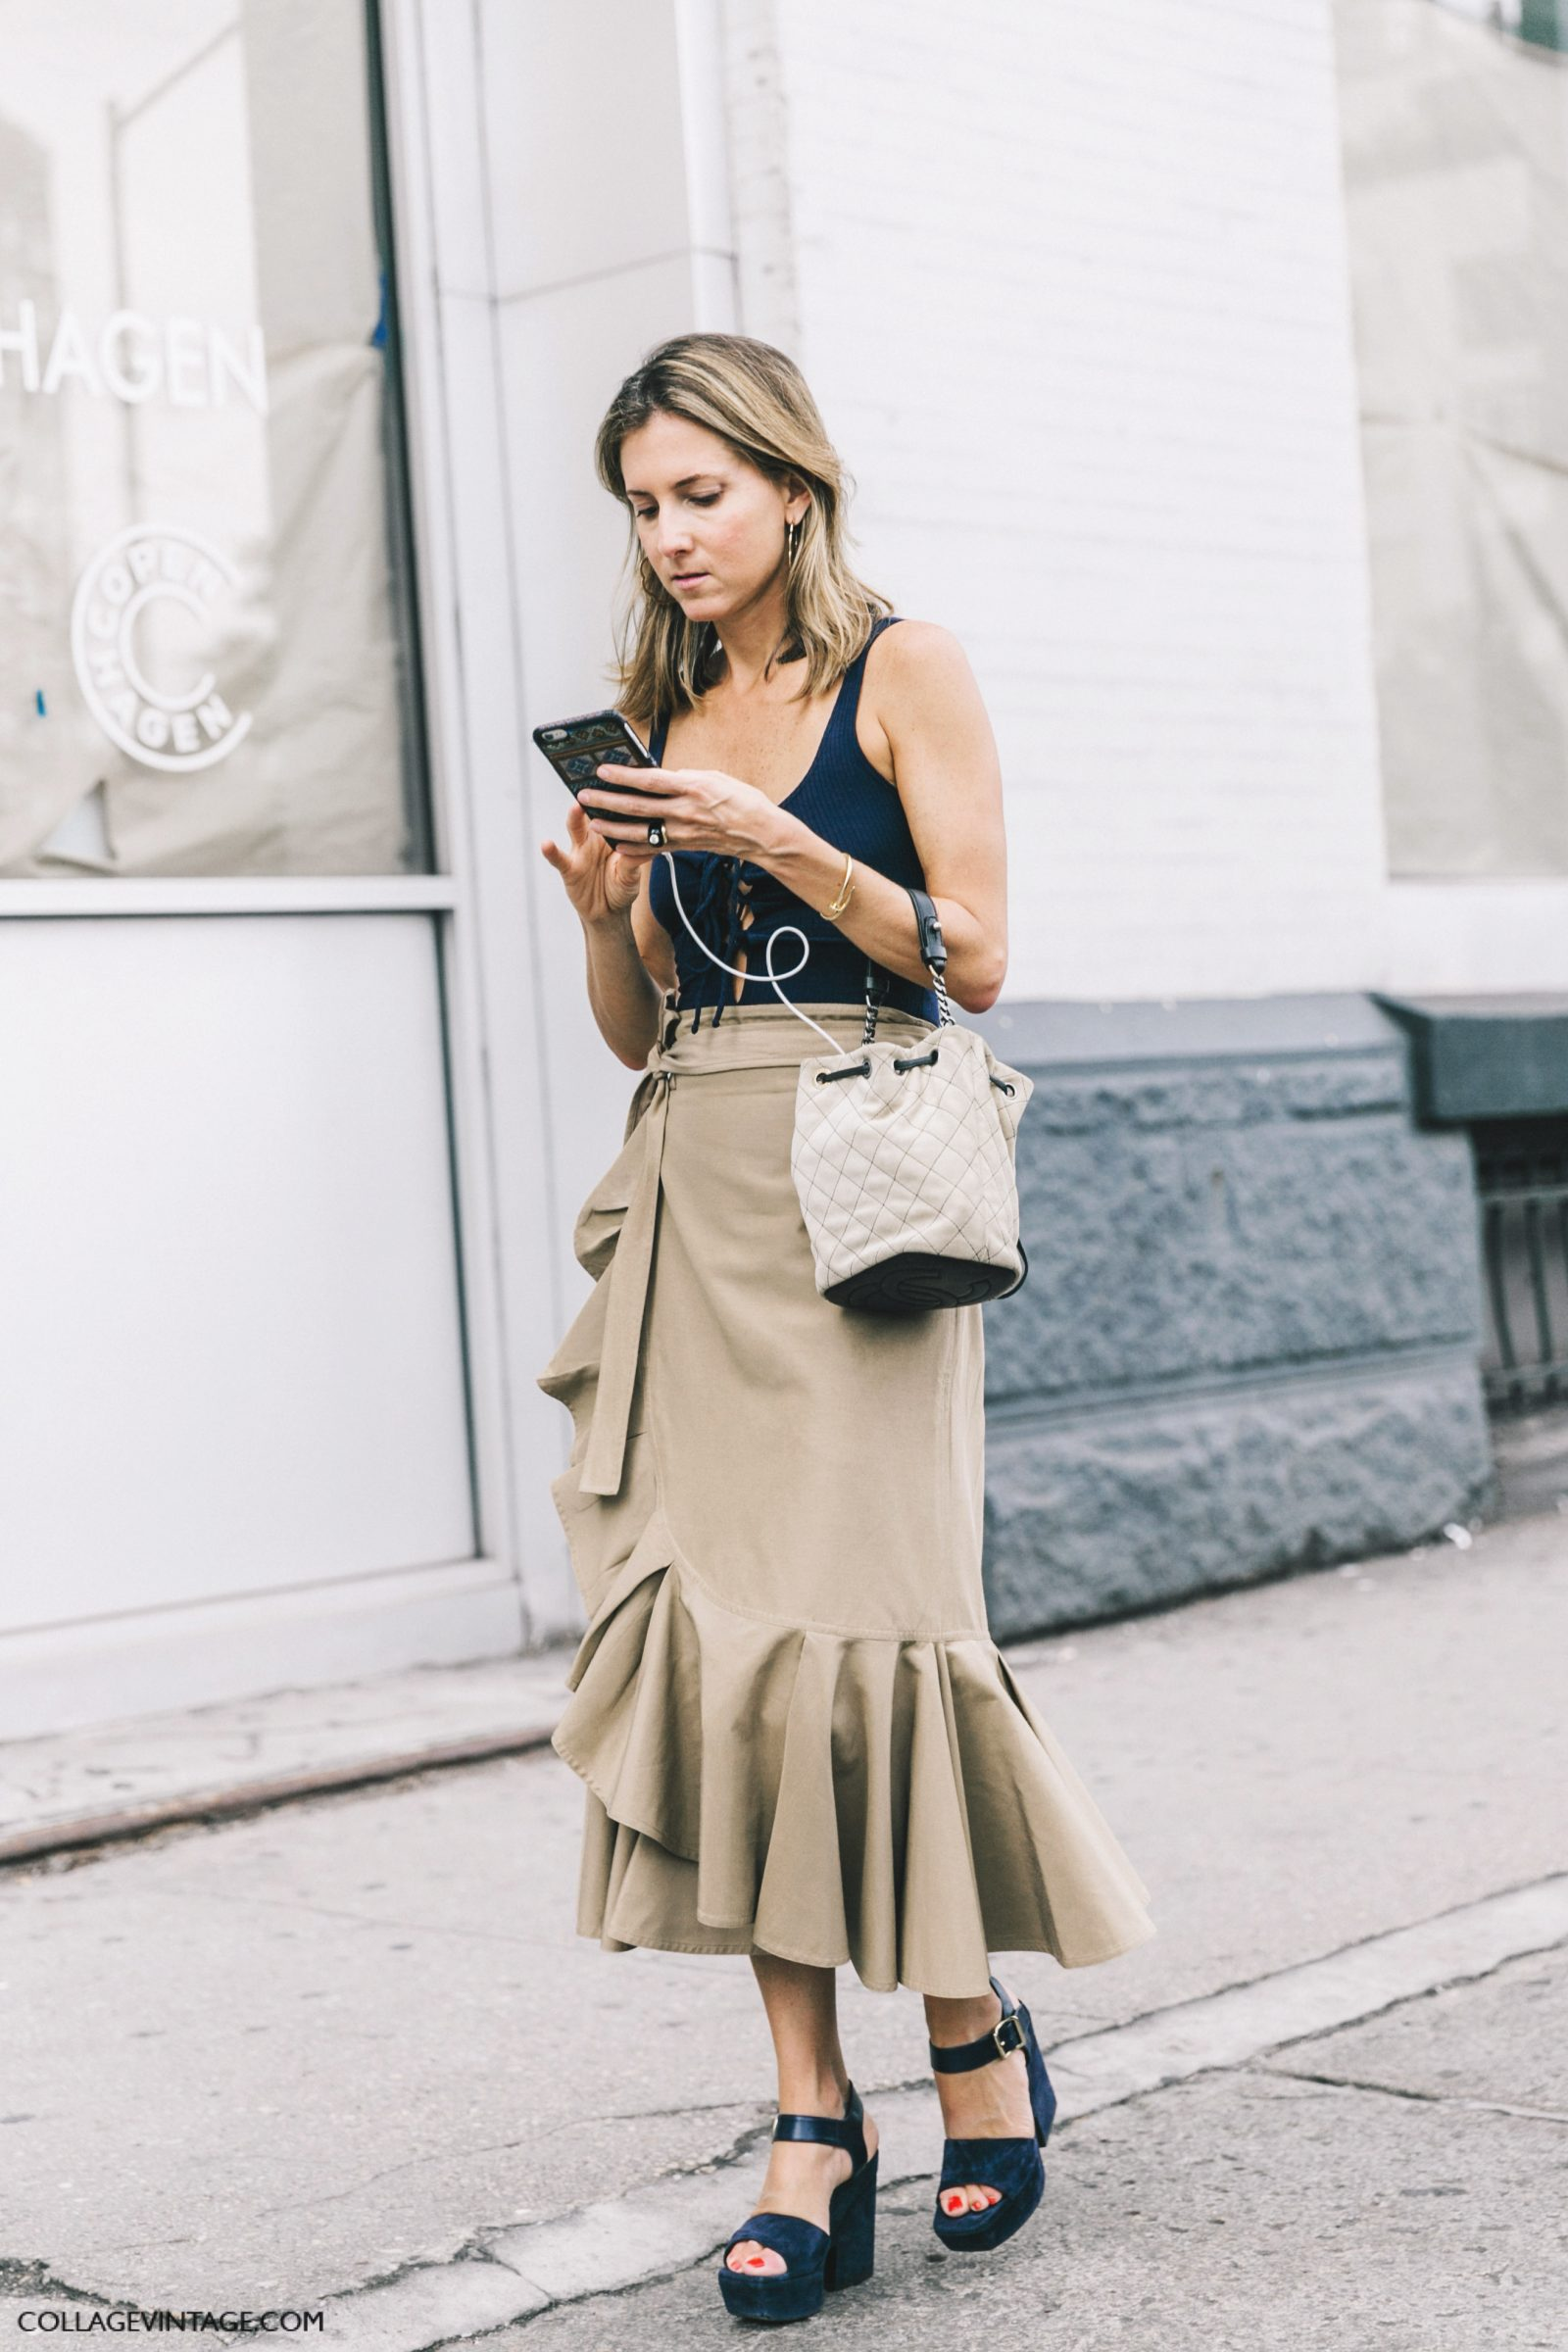 New York Fashion Street Style